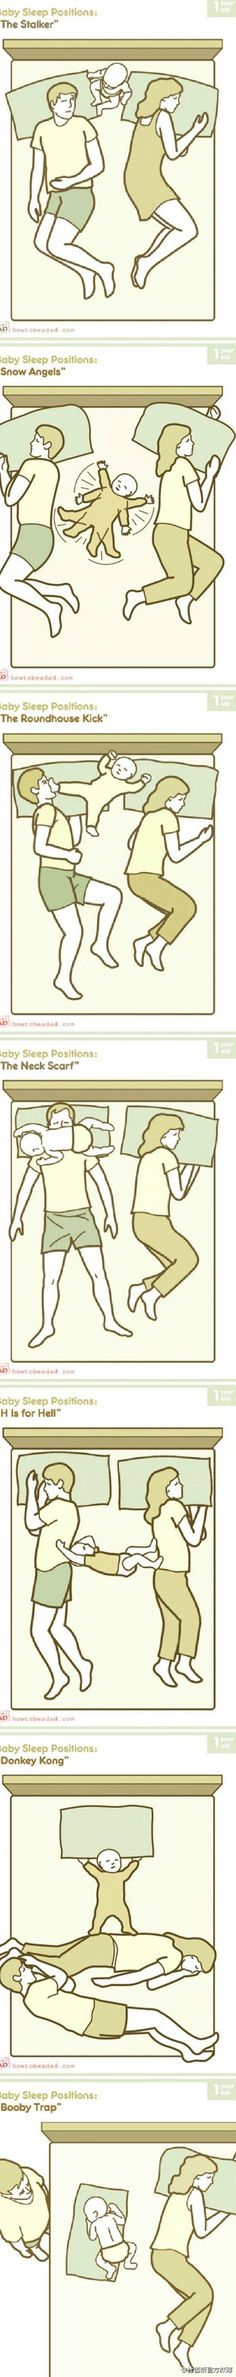 Perfect for my husband to see what co sleeping is like before our baby gets here lol,he'll change his mind! Lol